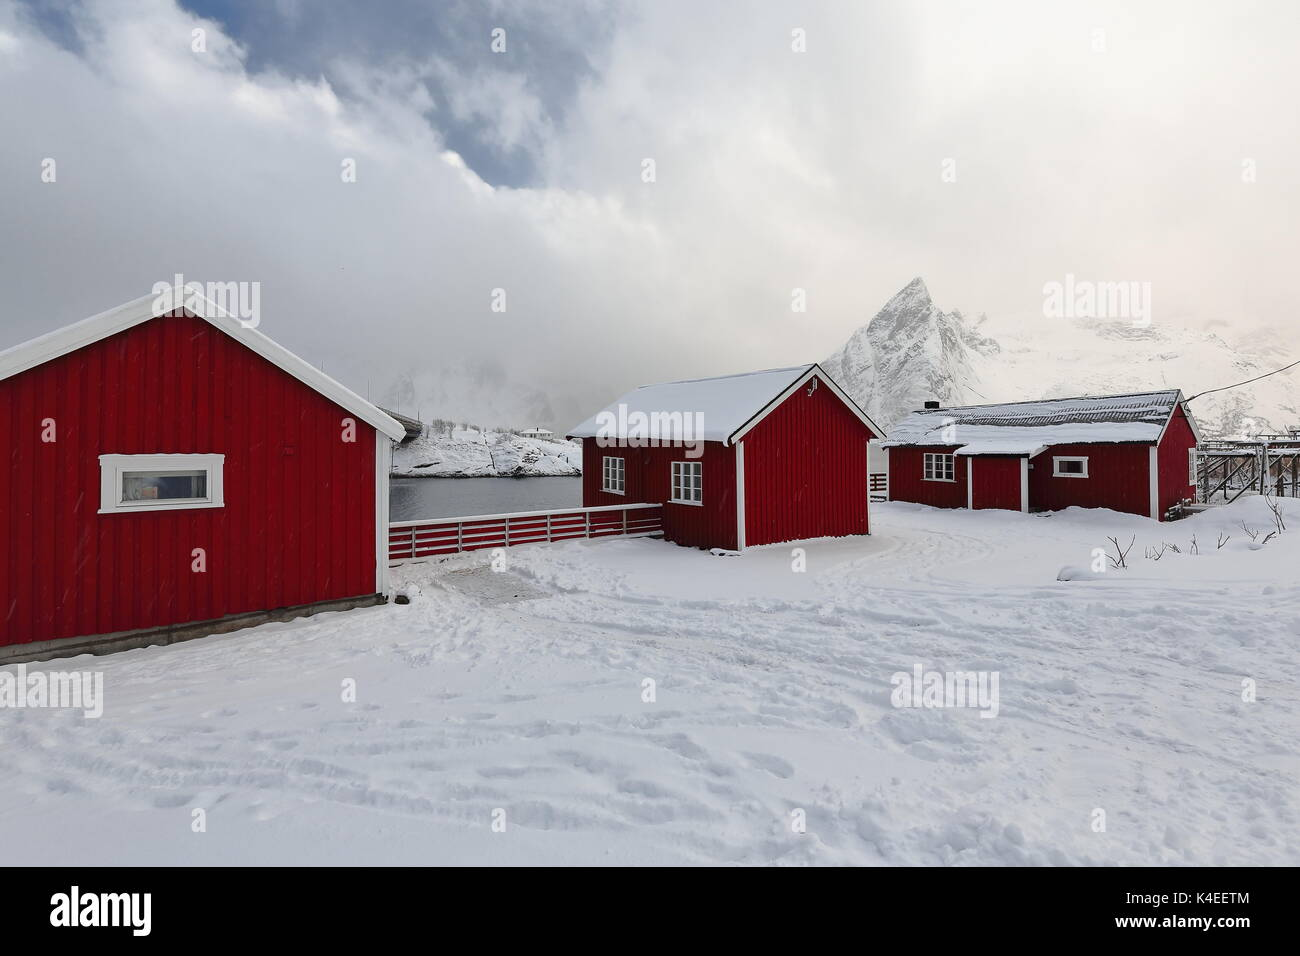 Red wooden rorbuer under heavy snowfall-traditional seasonal fishing huts-now for tourist use. Snowcapped Olstinden-Rostadtinden mts.across Reinefjord - Stock Image